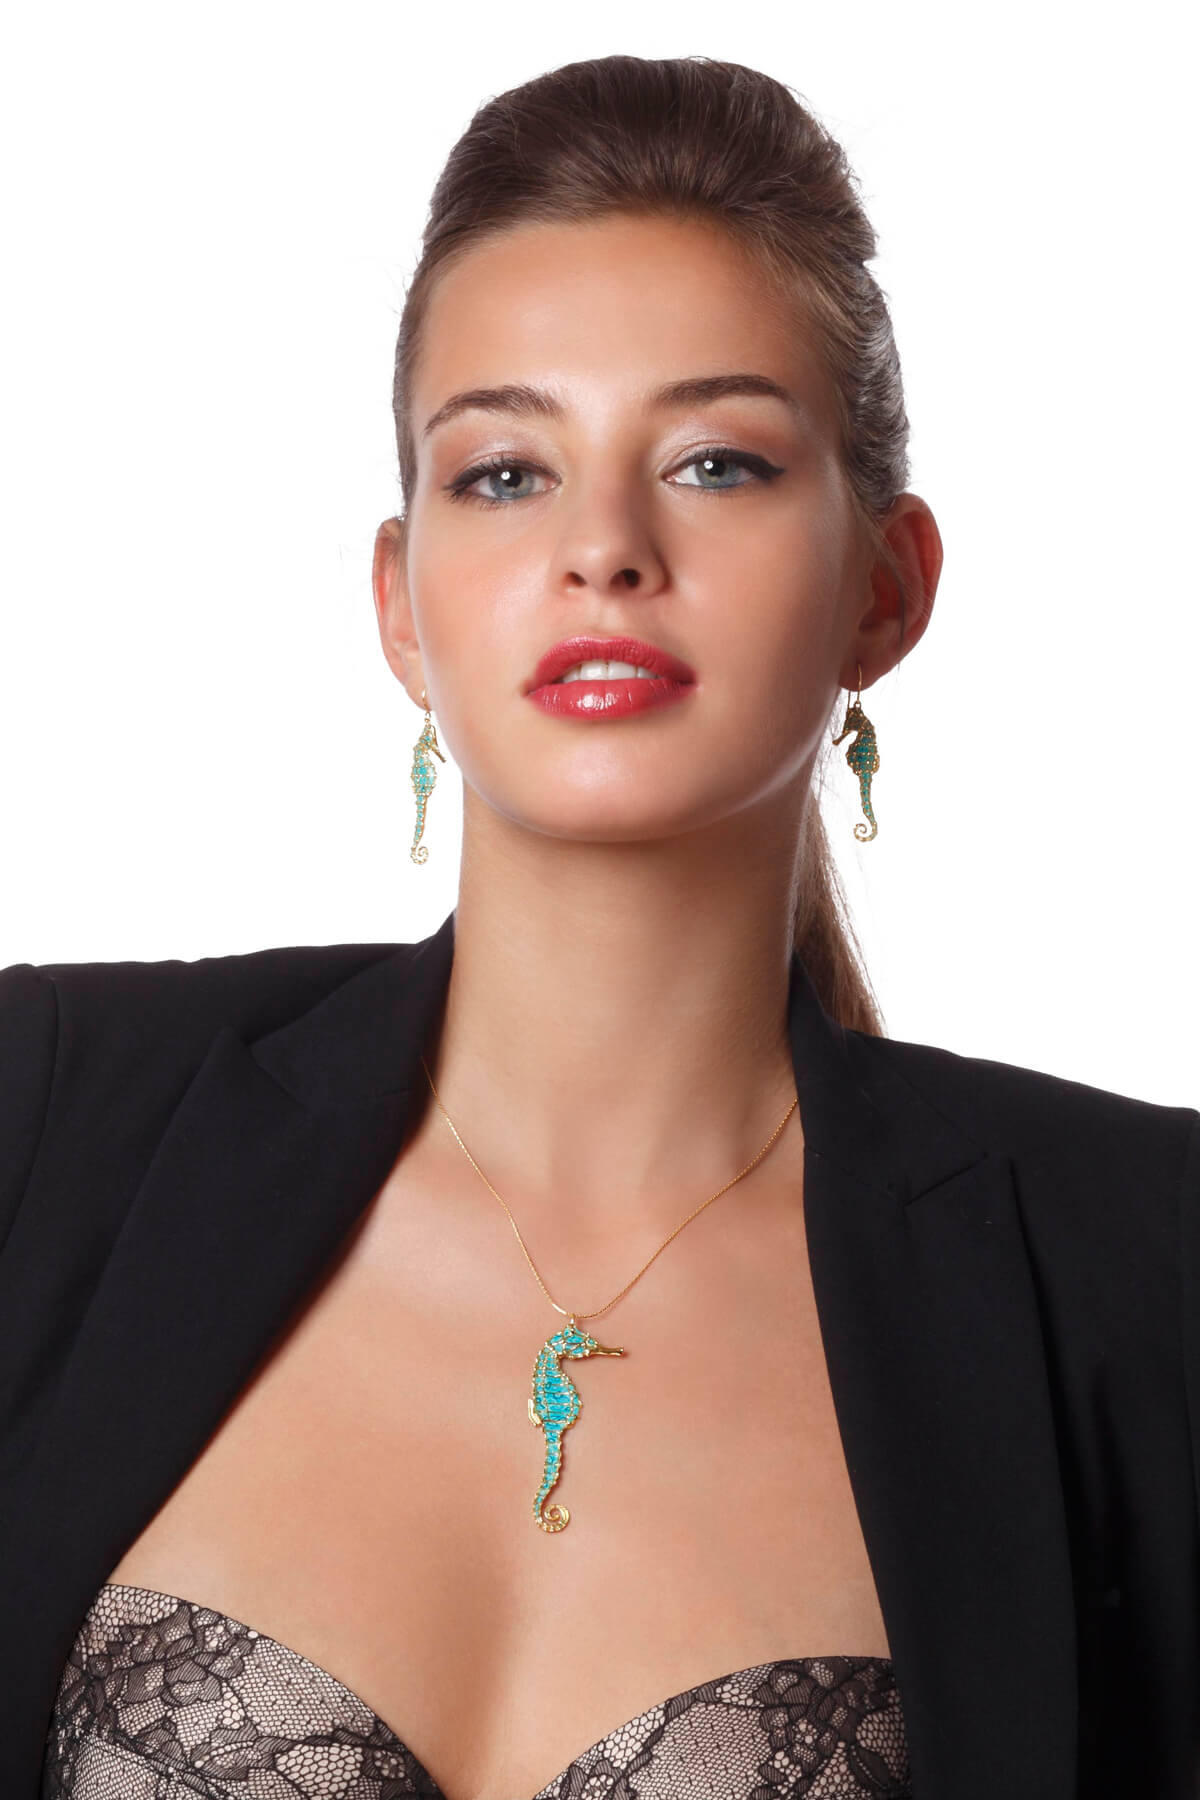 Handmade vermeil seahorse long necklace and earrings -turquoise pattern